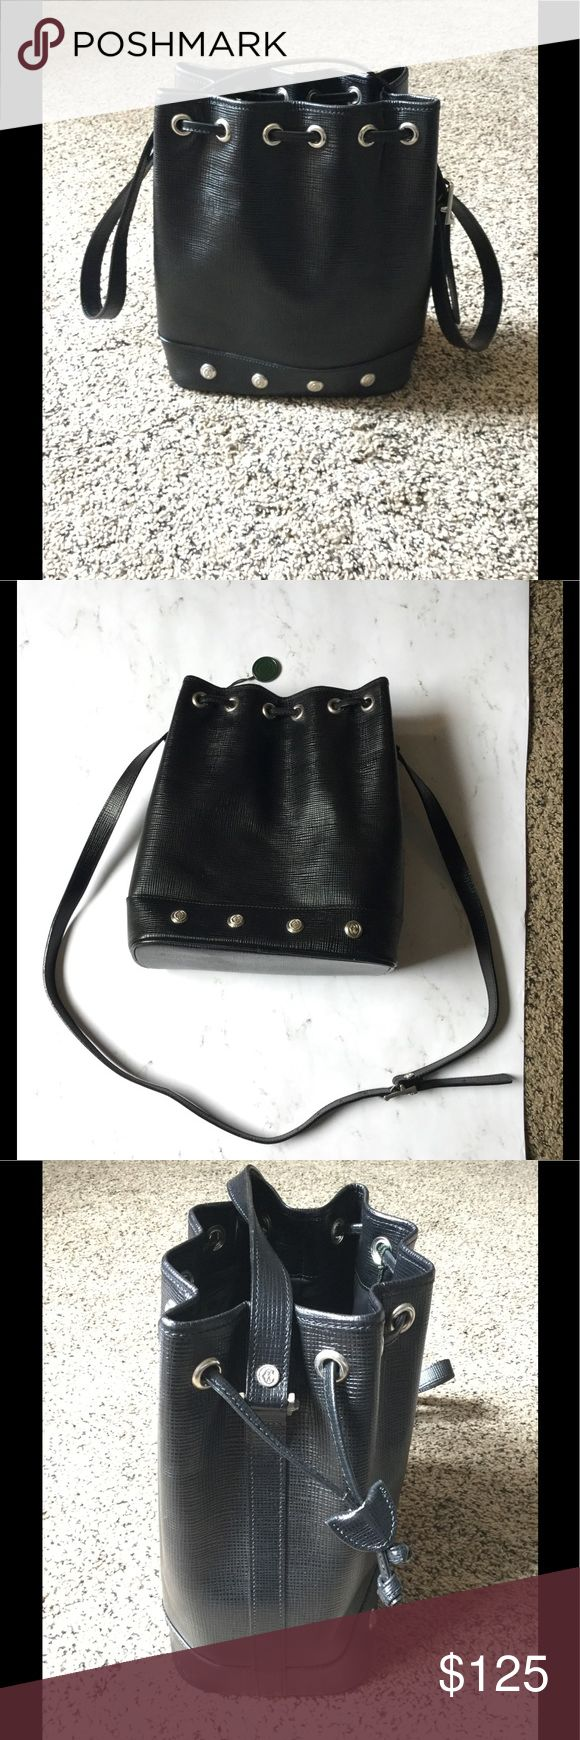 """🌟 Authentic Philippe Charriol bucket bag🌟 This is a beautiful Made In France bag. That features a glossy black textured leather. This bag also has, silver hardware all around the outside with a zippered pocket inside and a silver hang tag that features the designers logo. Bag also has adjustable strap, longest length 22 1/4"""". Shortest length 19"""". This bag can be worn as a cross body when out with the kids. ✨IN GREAT CONDITION✨ Philippe Charriol Bags Shoulder Bags"""